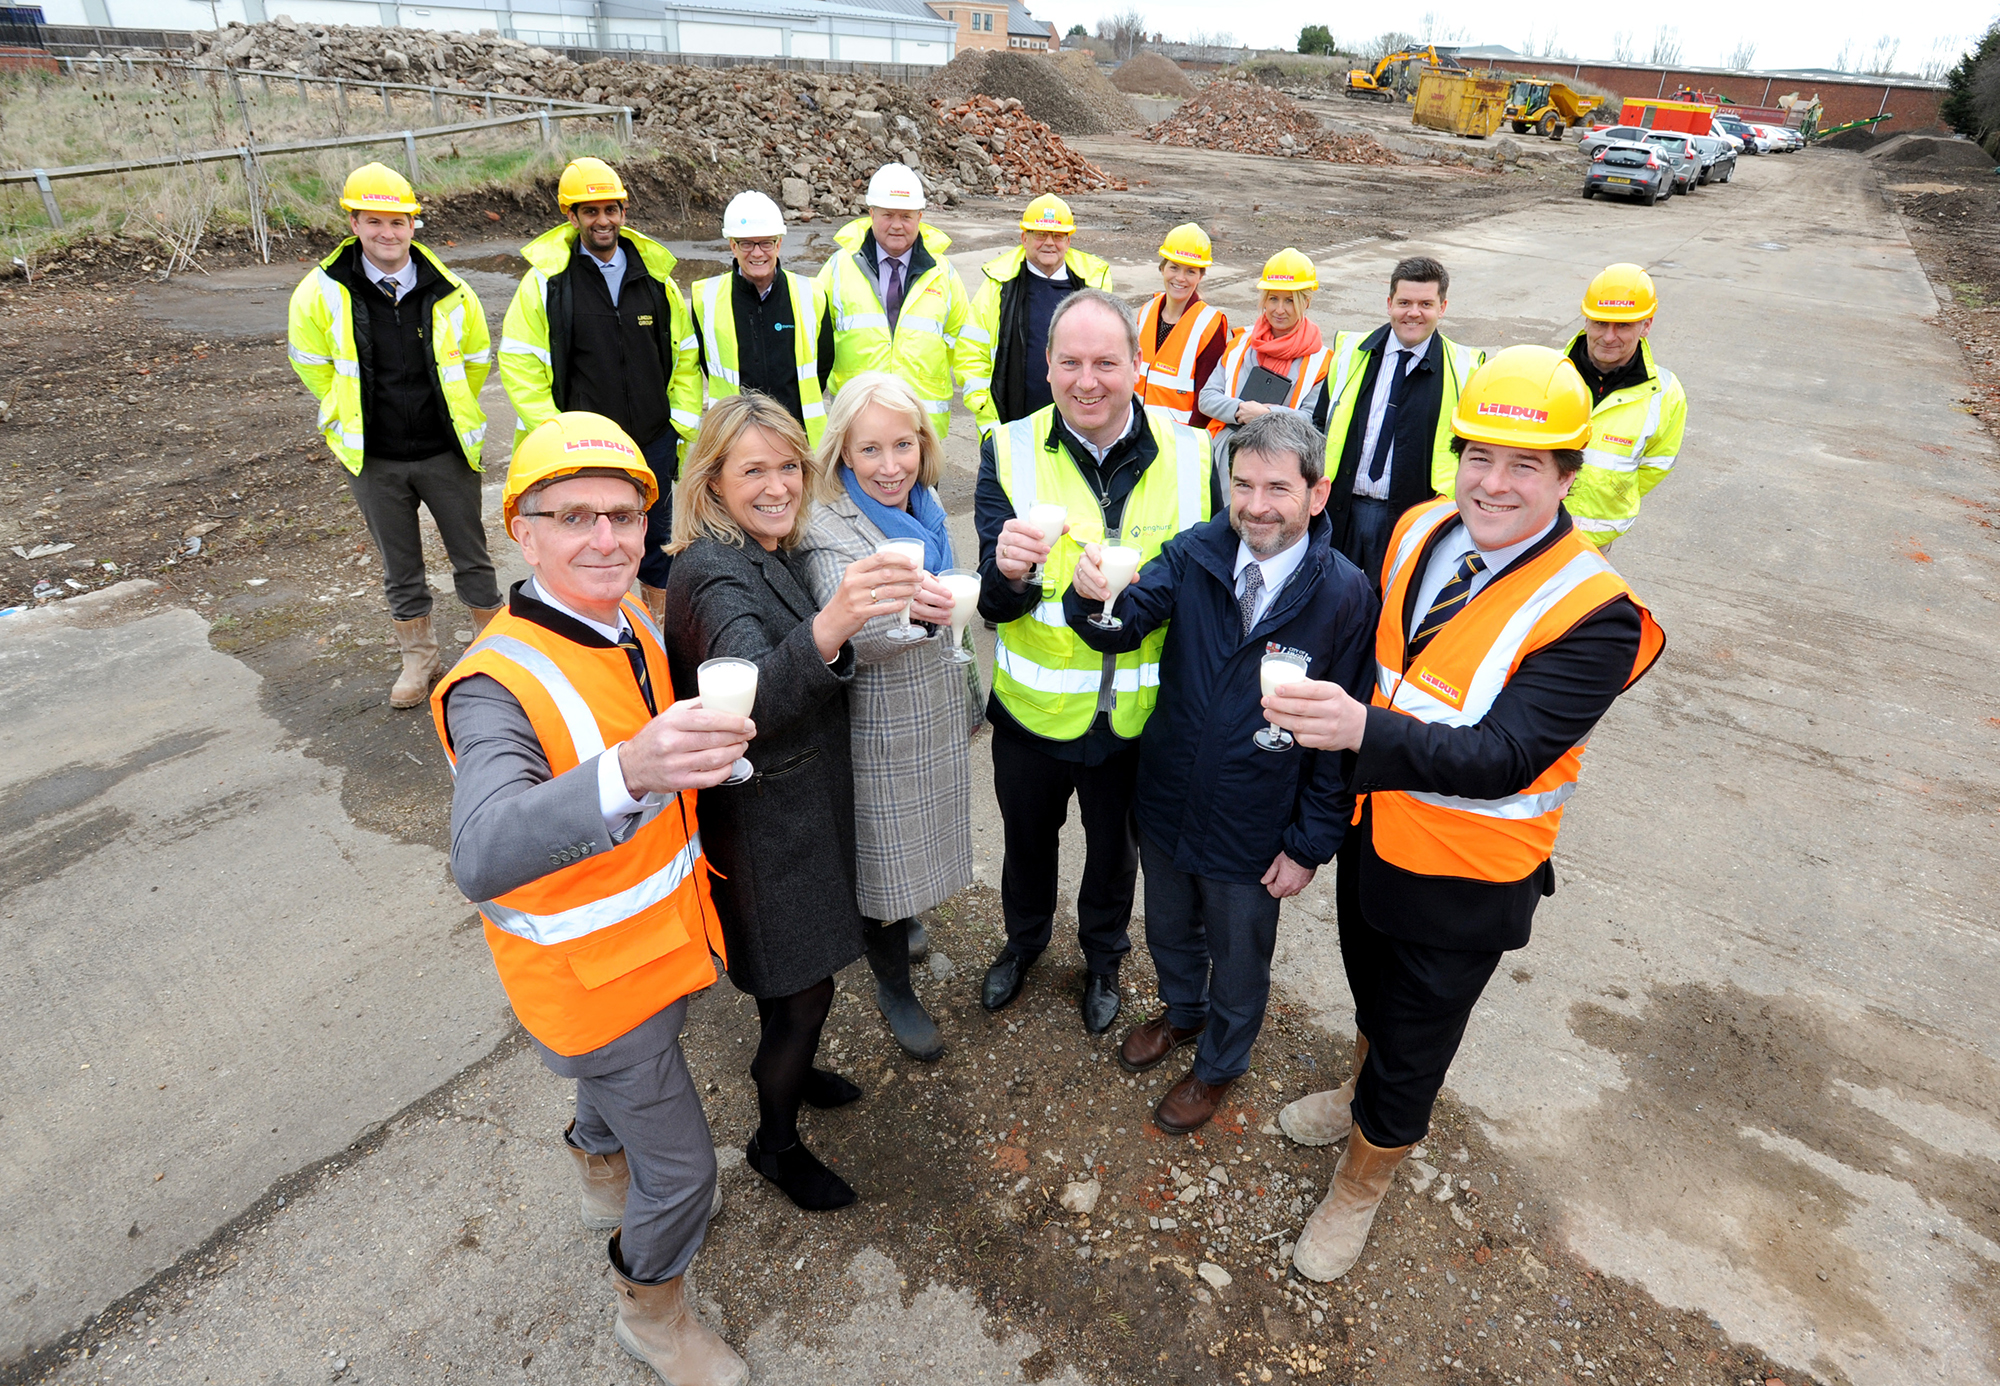 Representatives from Longhurst Group and Lindum Homes toast the start of work on the former Boultham Diary site in Lincoln